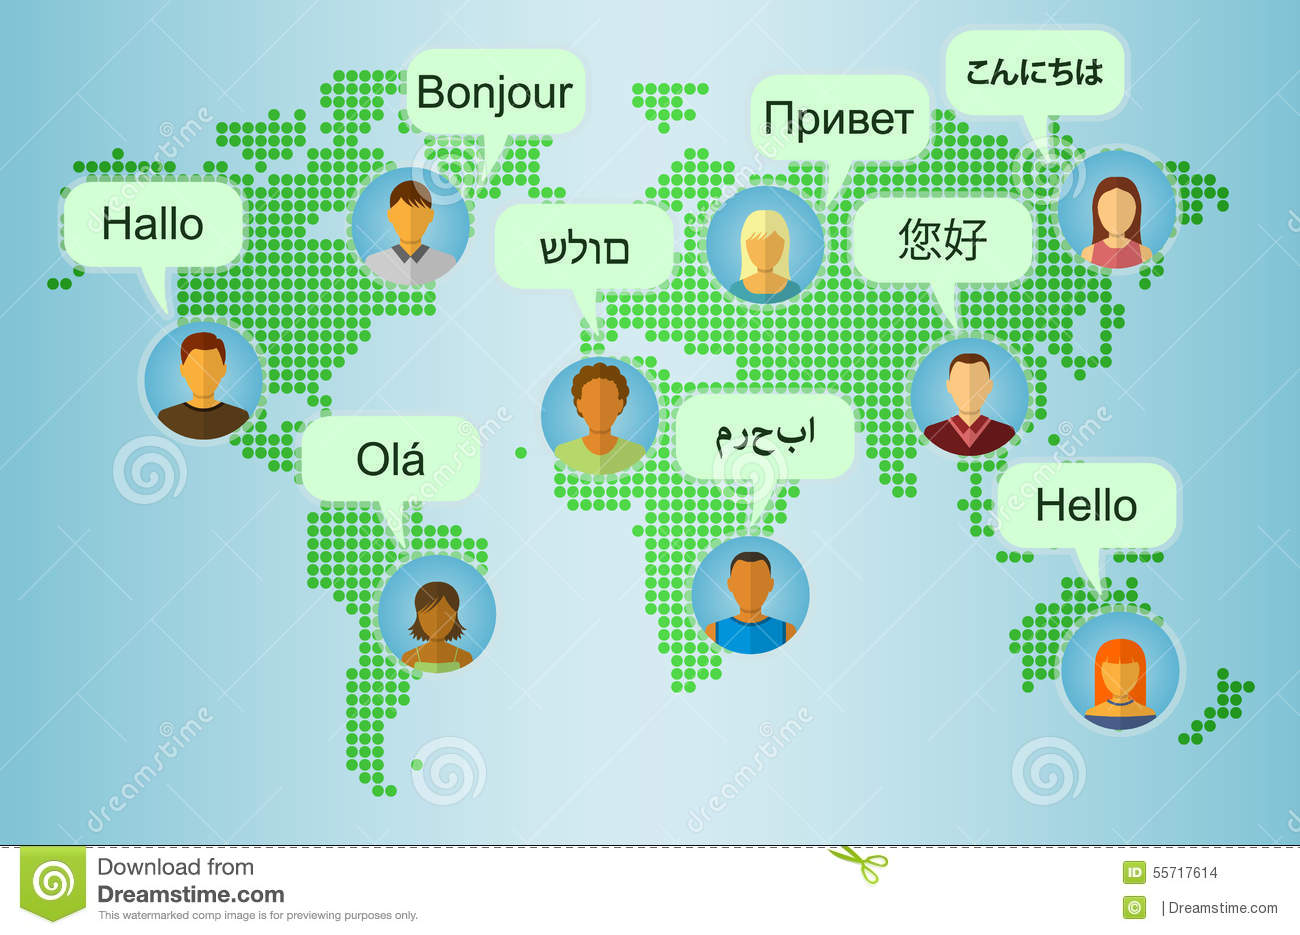 Set of people icons on earth map background stock vector download set of people icons on earth map background stock vector illustration of communication m4hsunfo